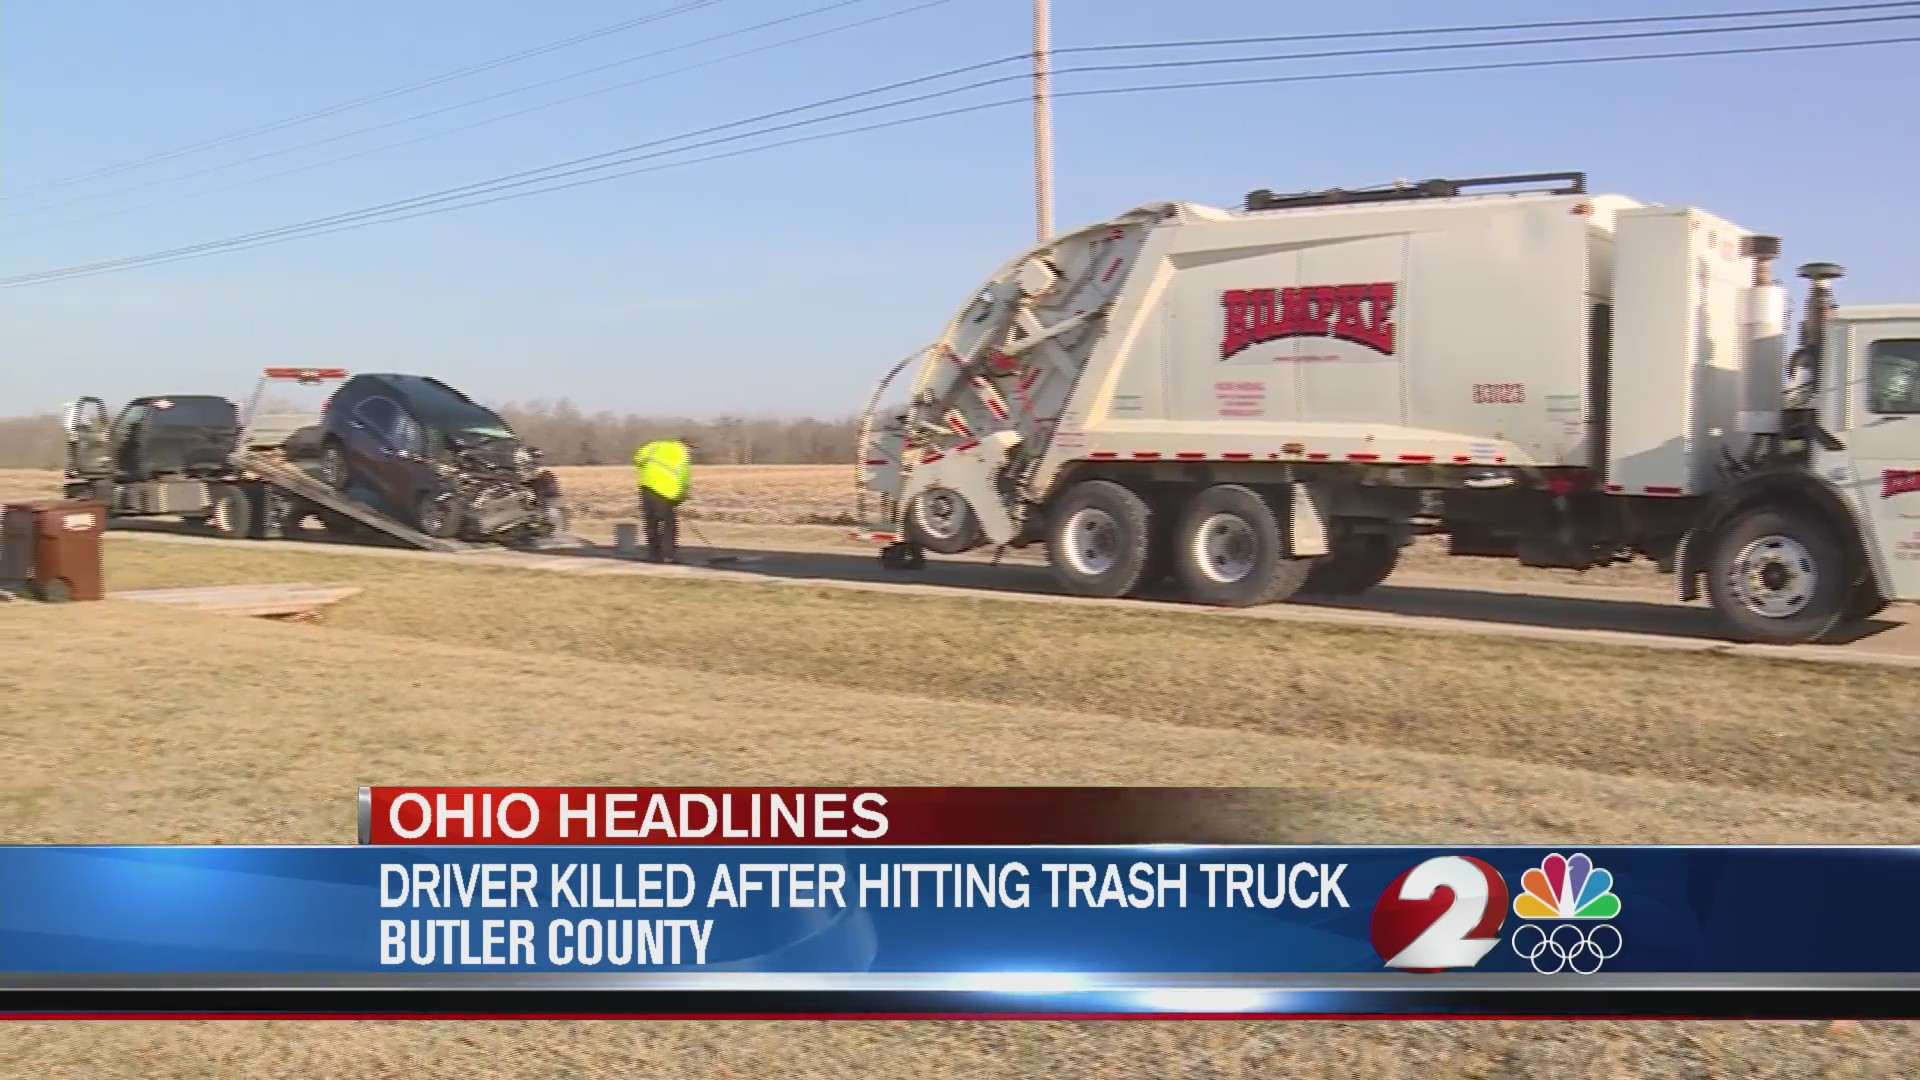 Driver killed after hitting trash truck in Butler County